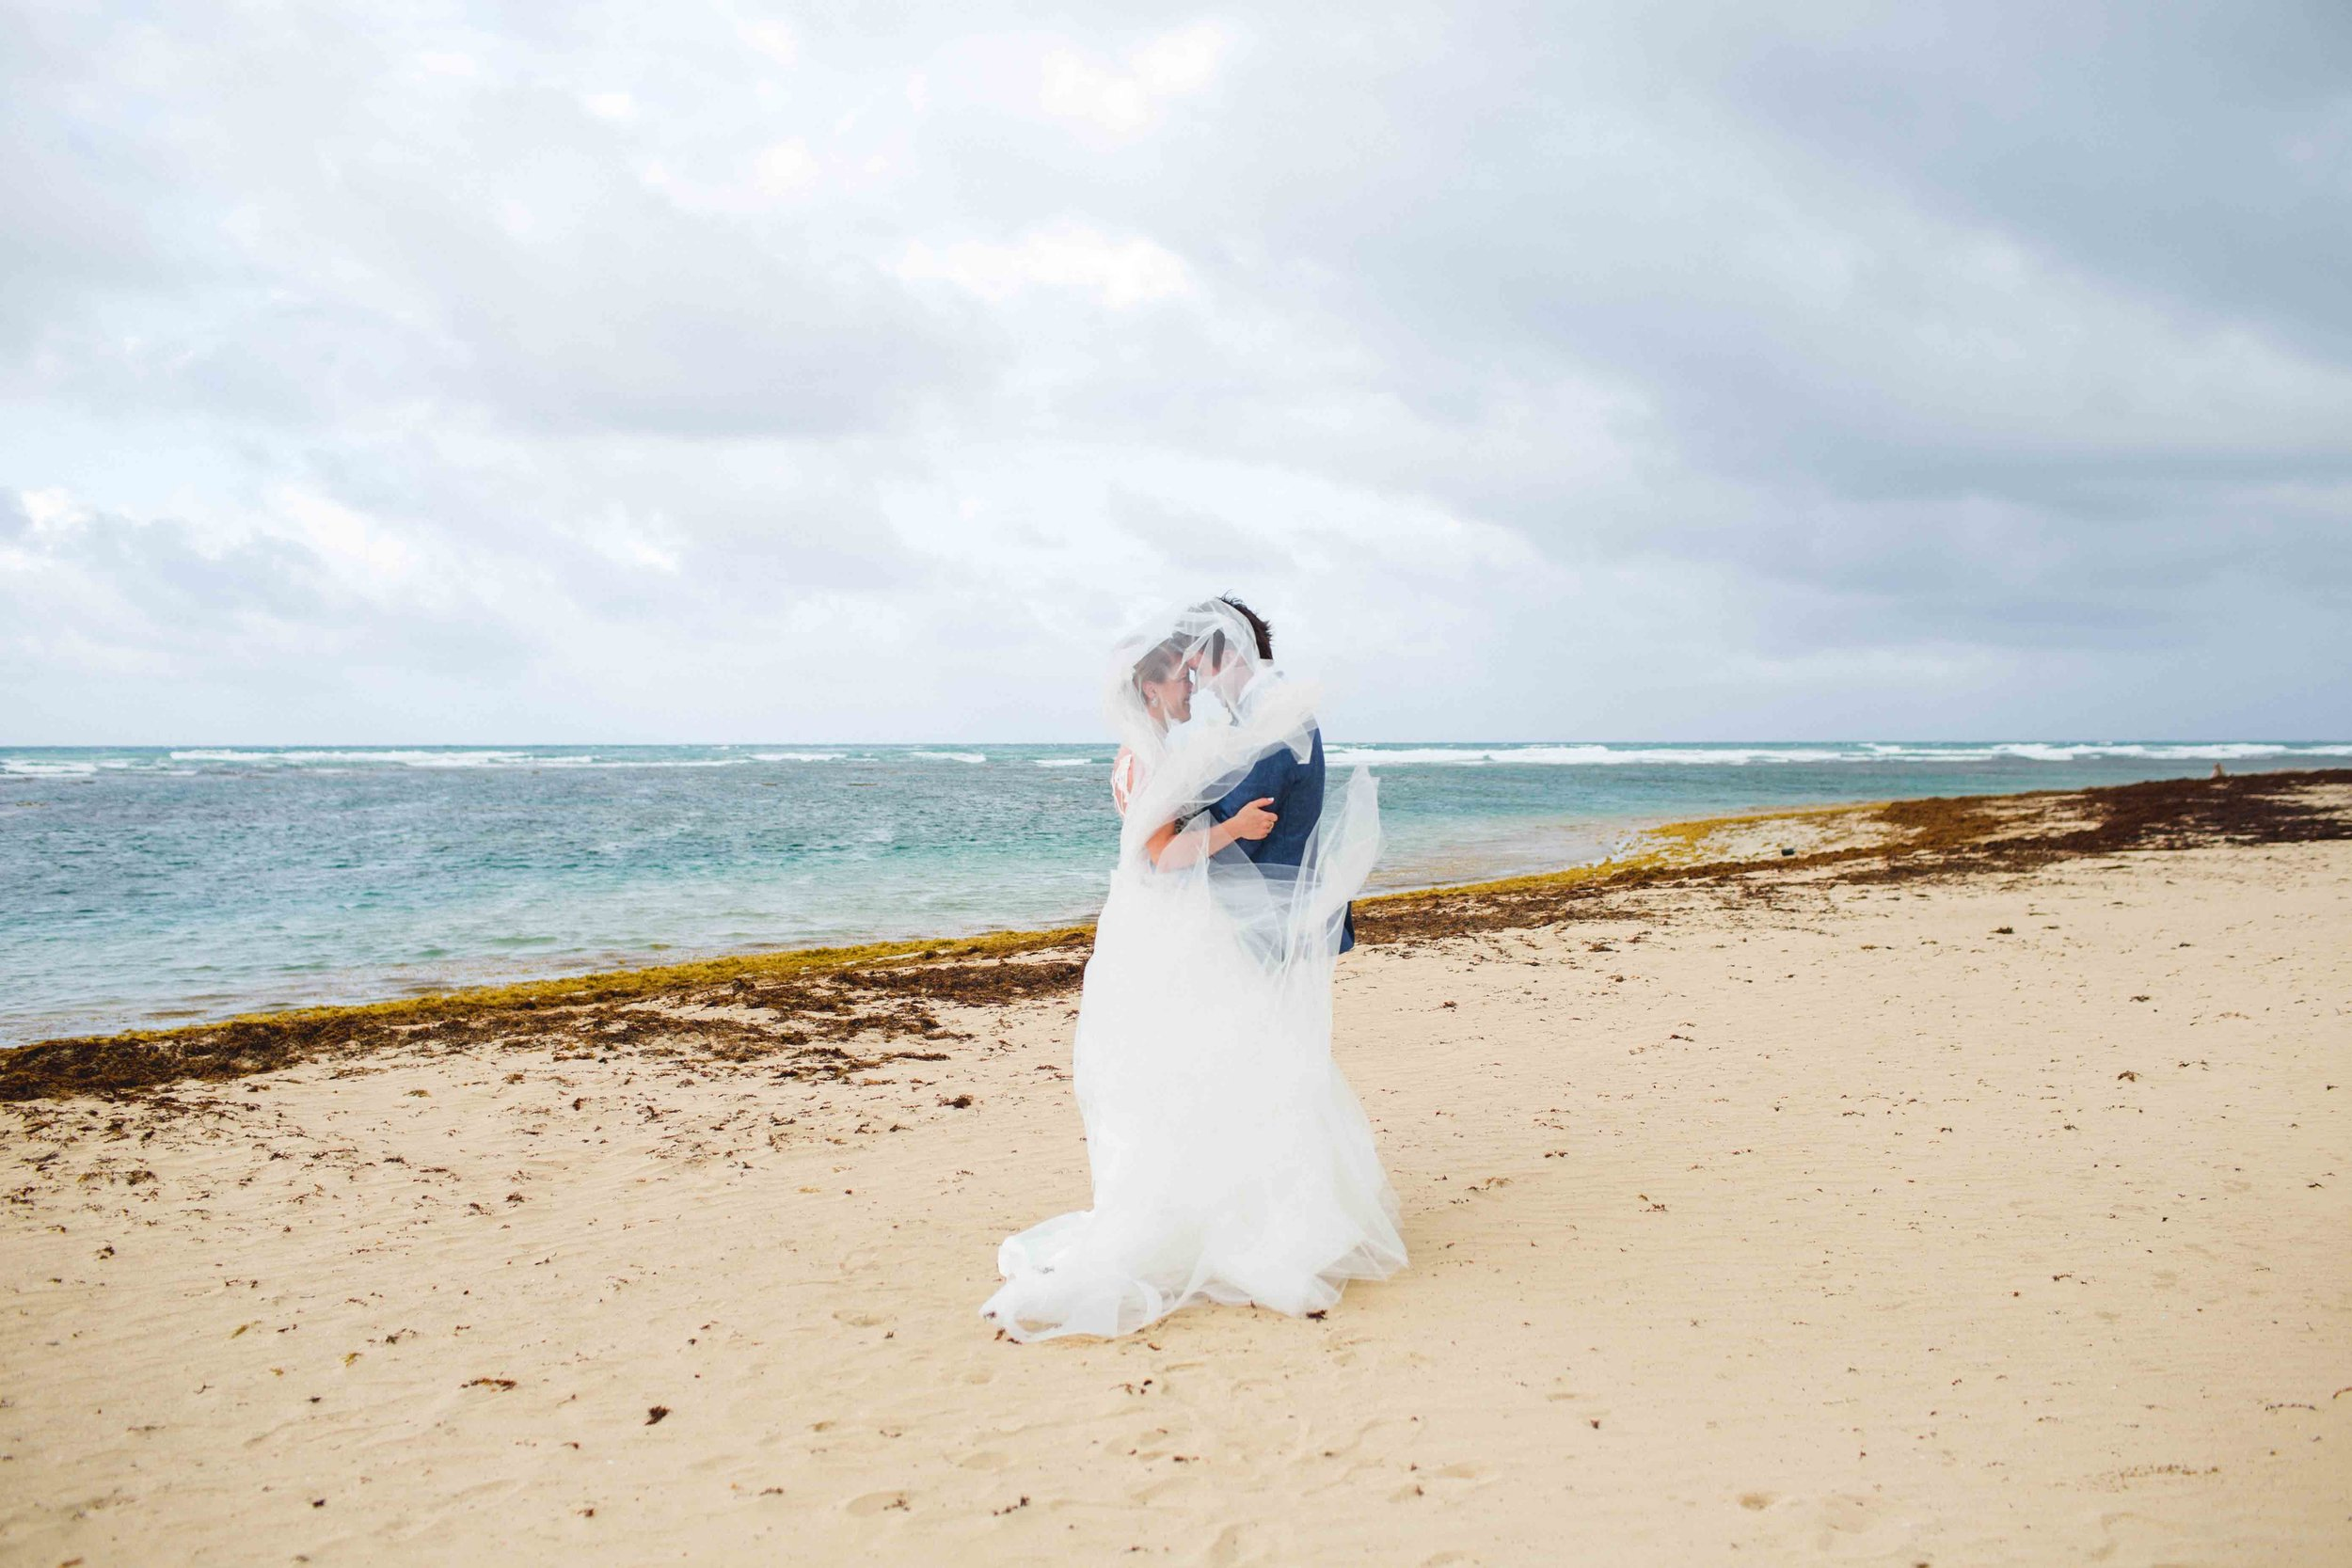 punta-cana-dominican-republic-wedding-photographer-104.jpg